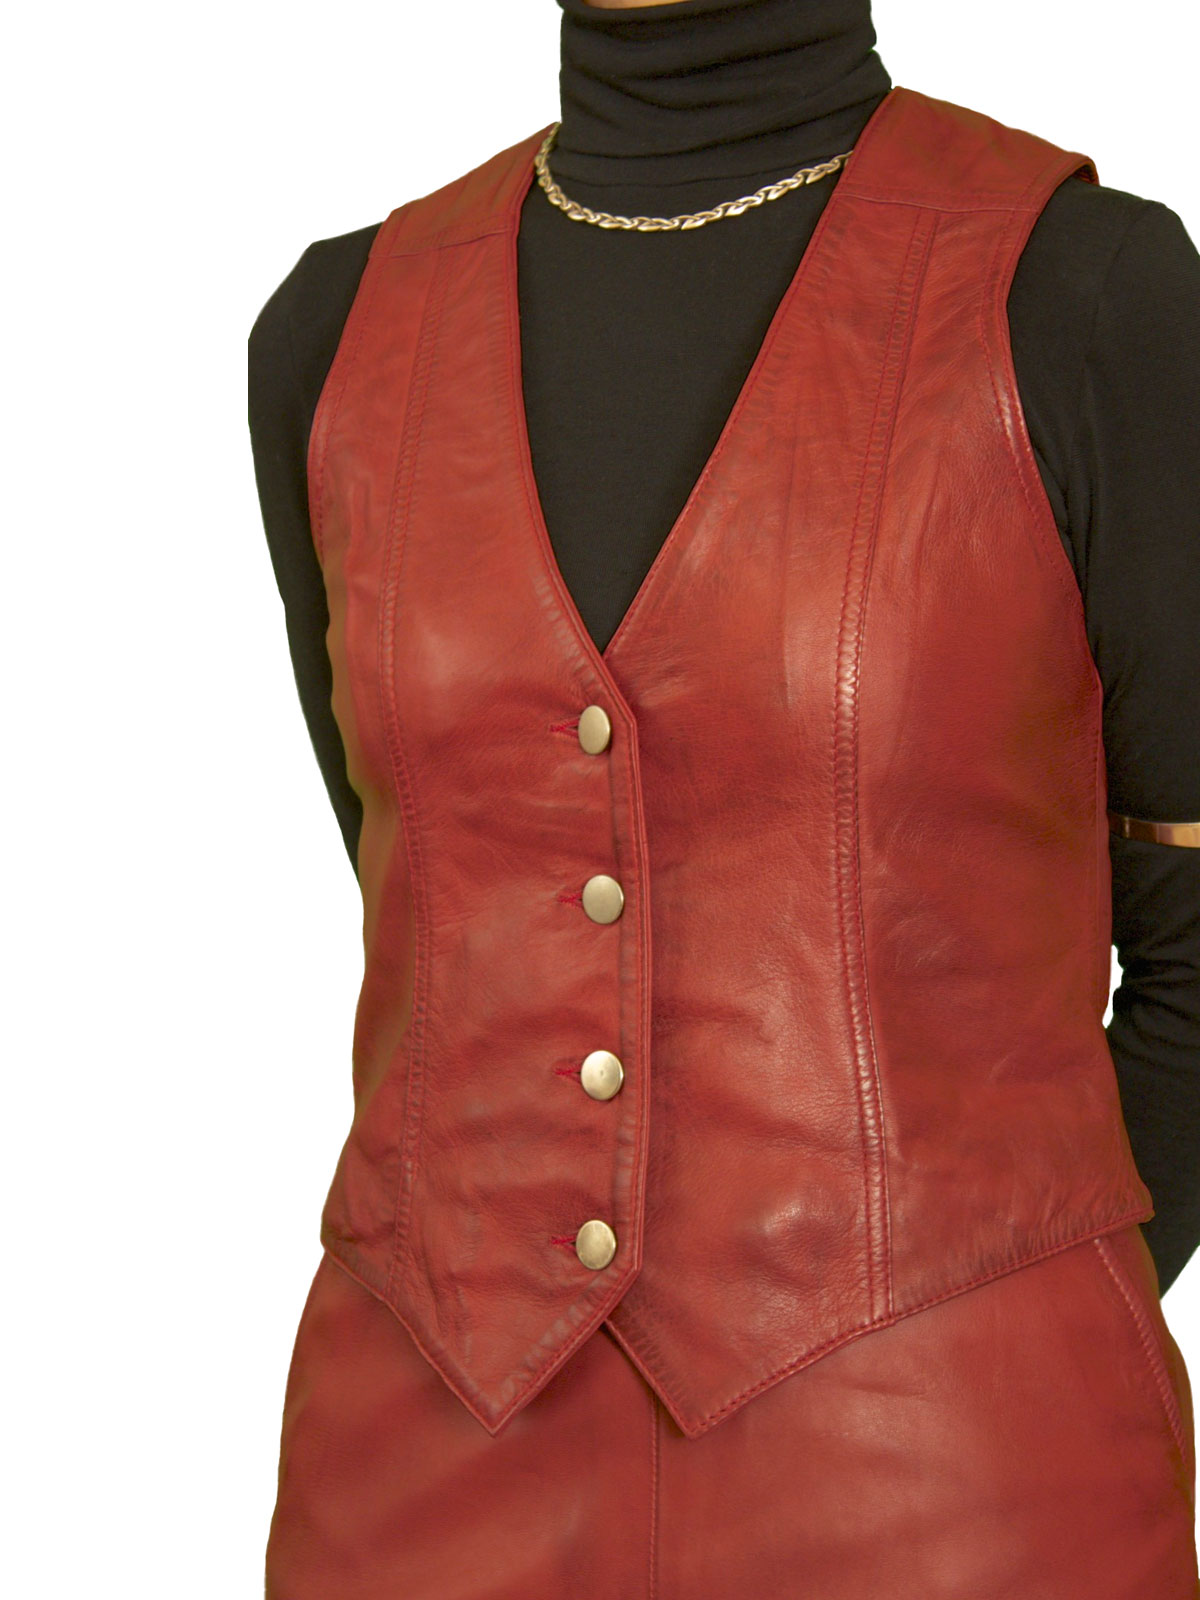 Womens luxury leather waistcoat back belt tout ensemble for Red leather shirt for womens